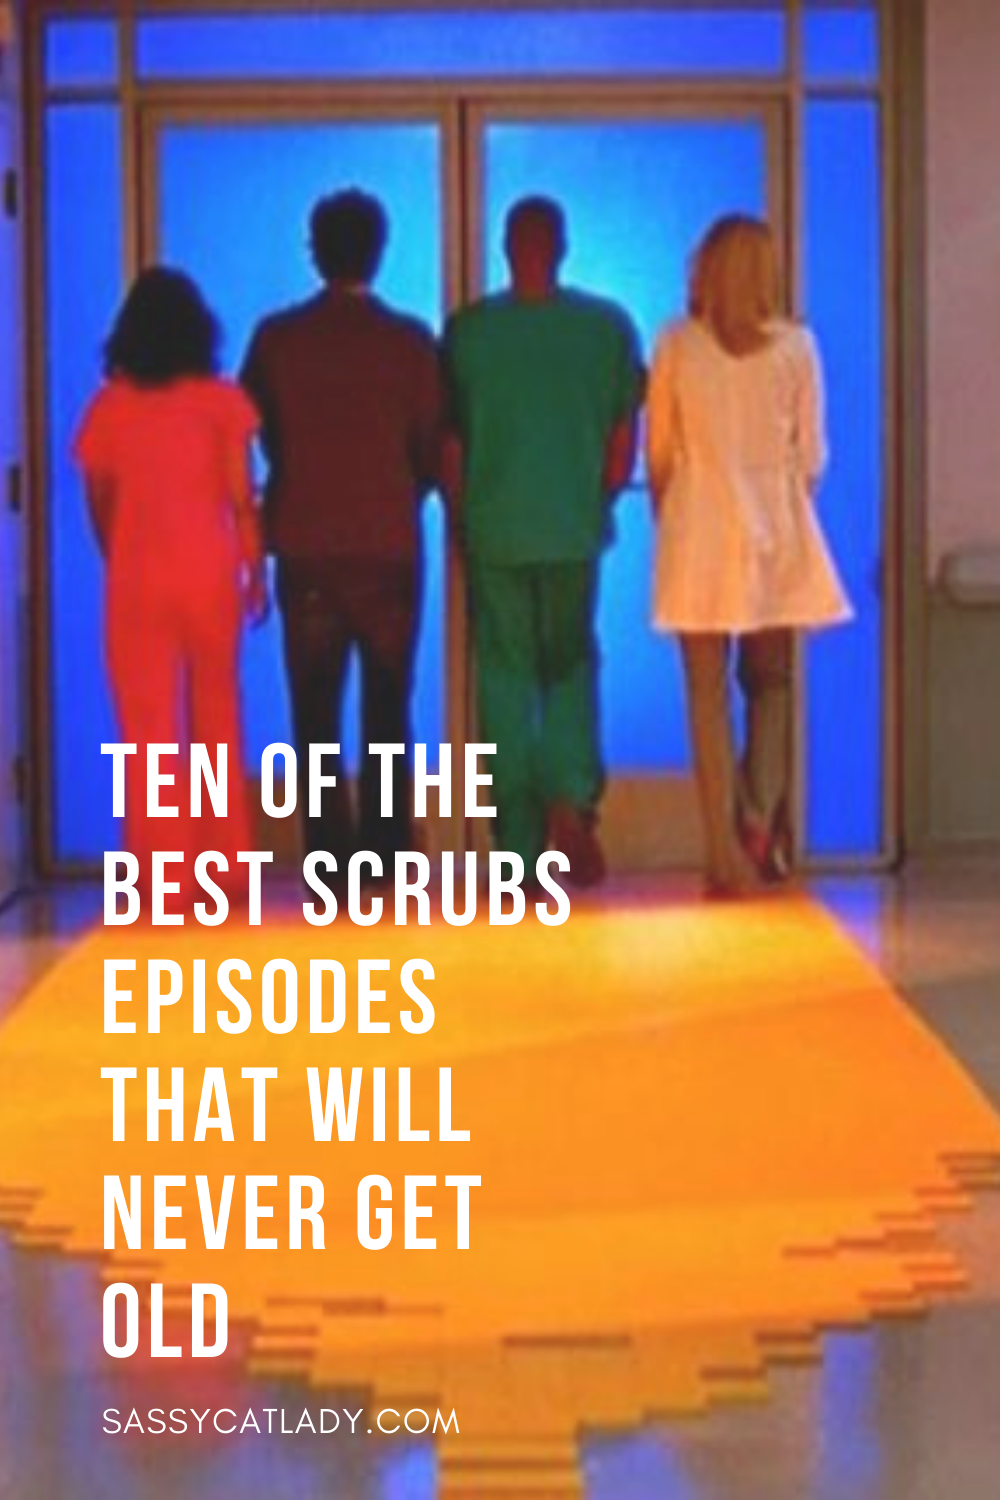 Ten of the Best Scrubs Episodes That Will Never Get Old - Pinterest Graphic